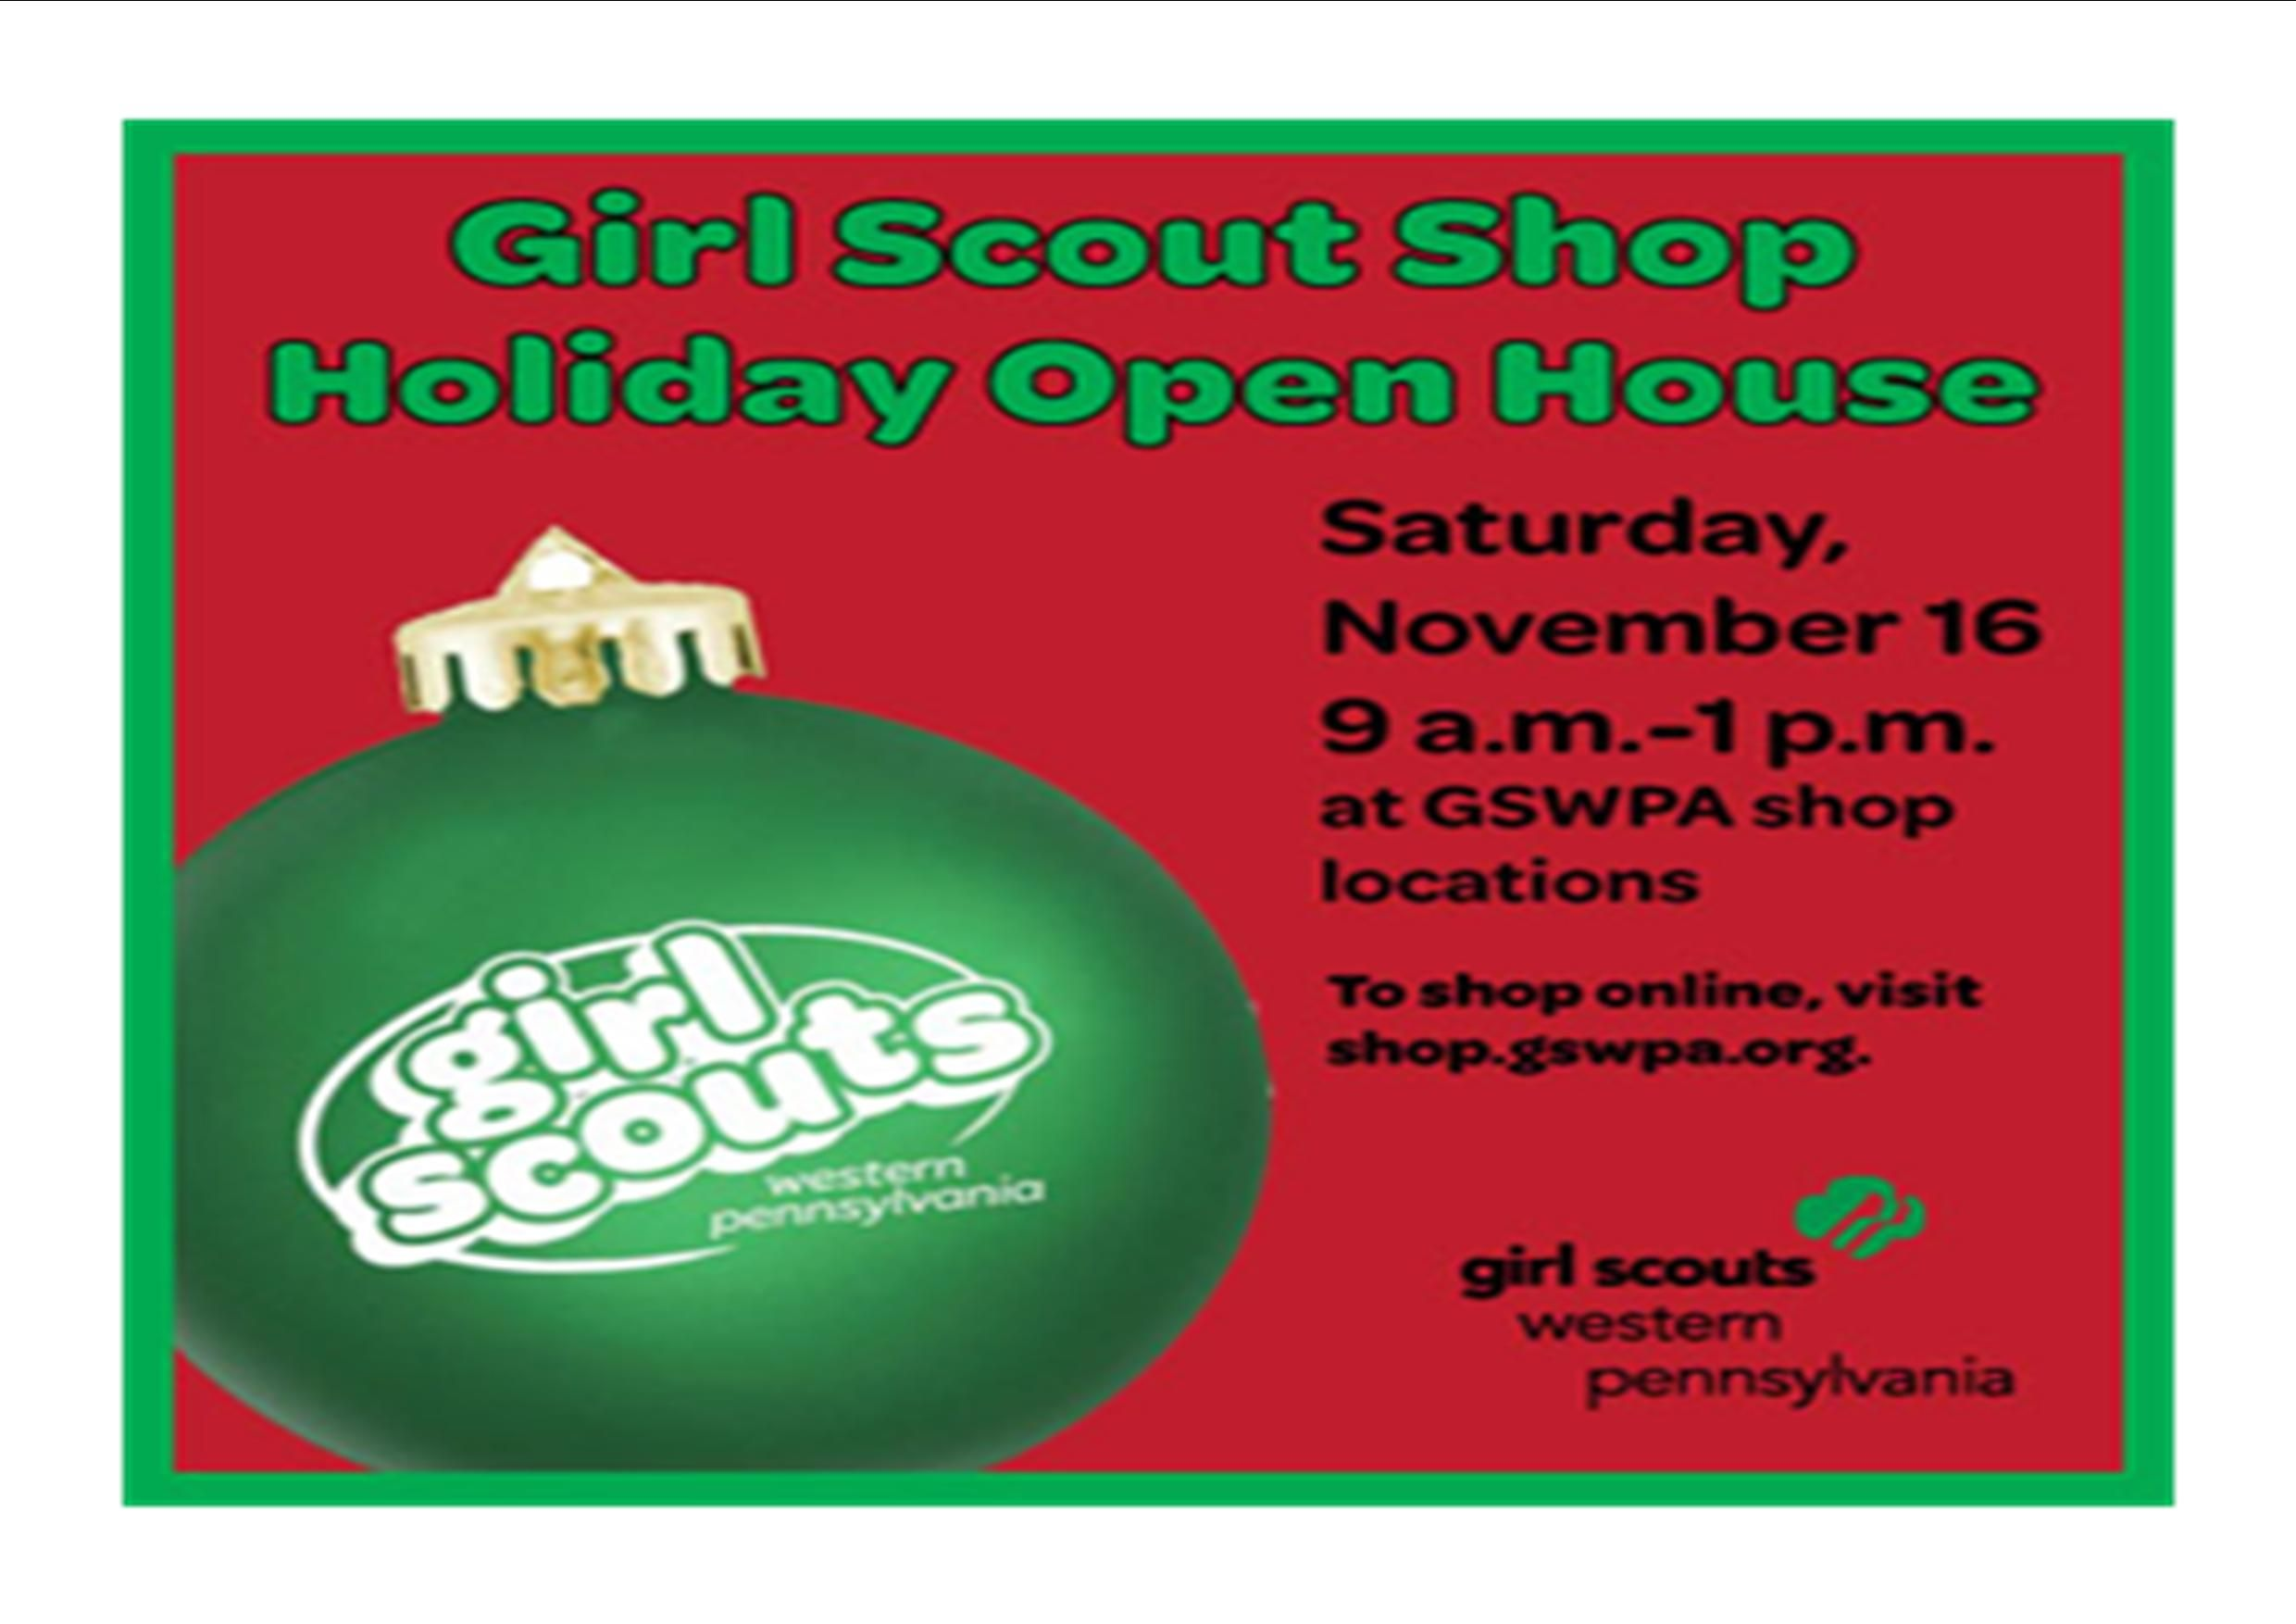 Girl scouts western pa holiday open house saturday november 16th girl scouts western pa holiday open house saturday november 16th from 9 1 publicscrutiny Gallery